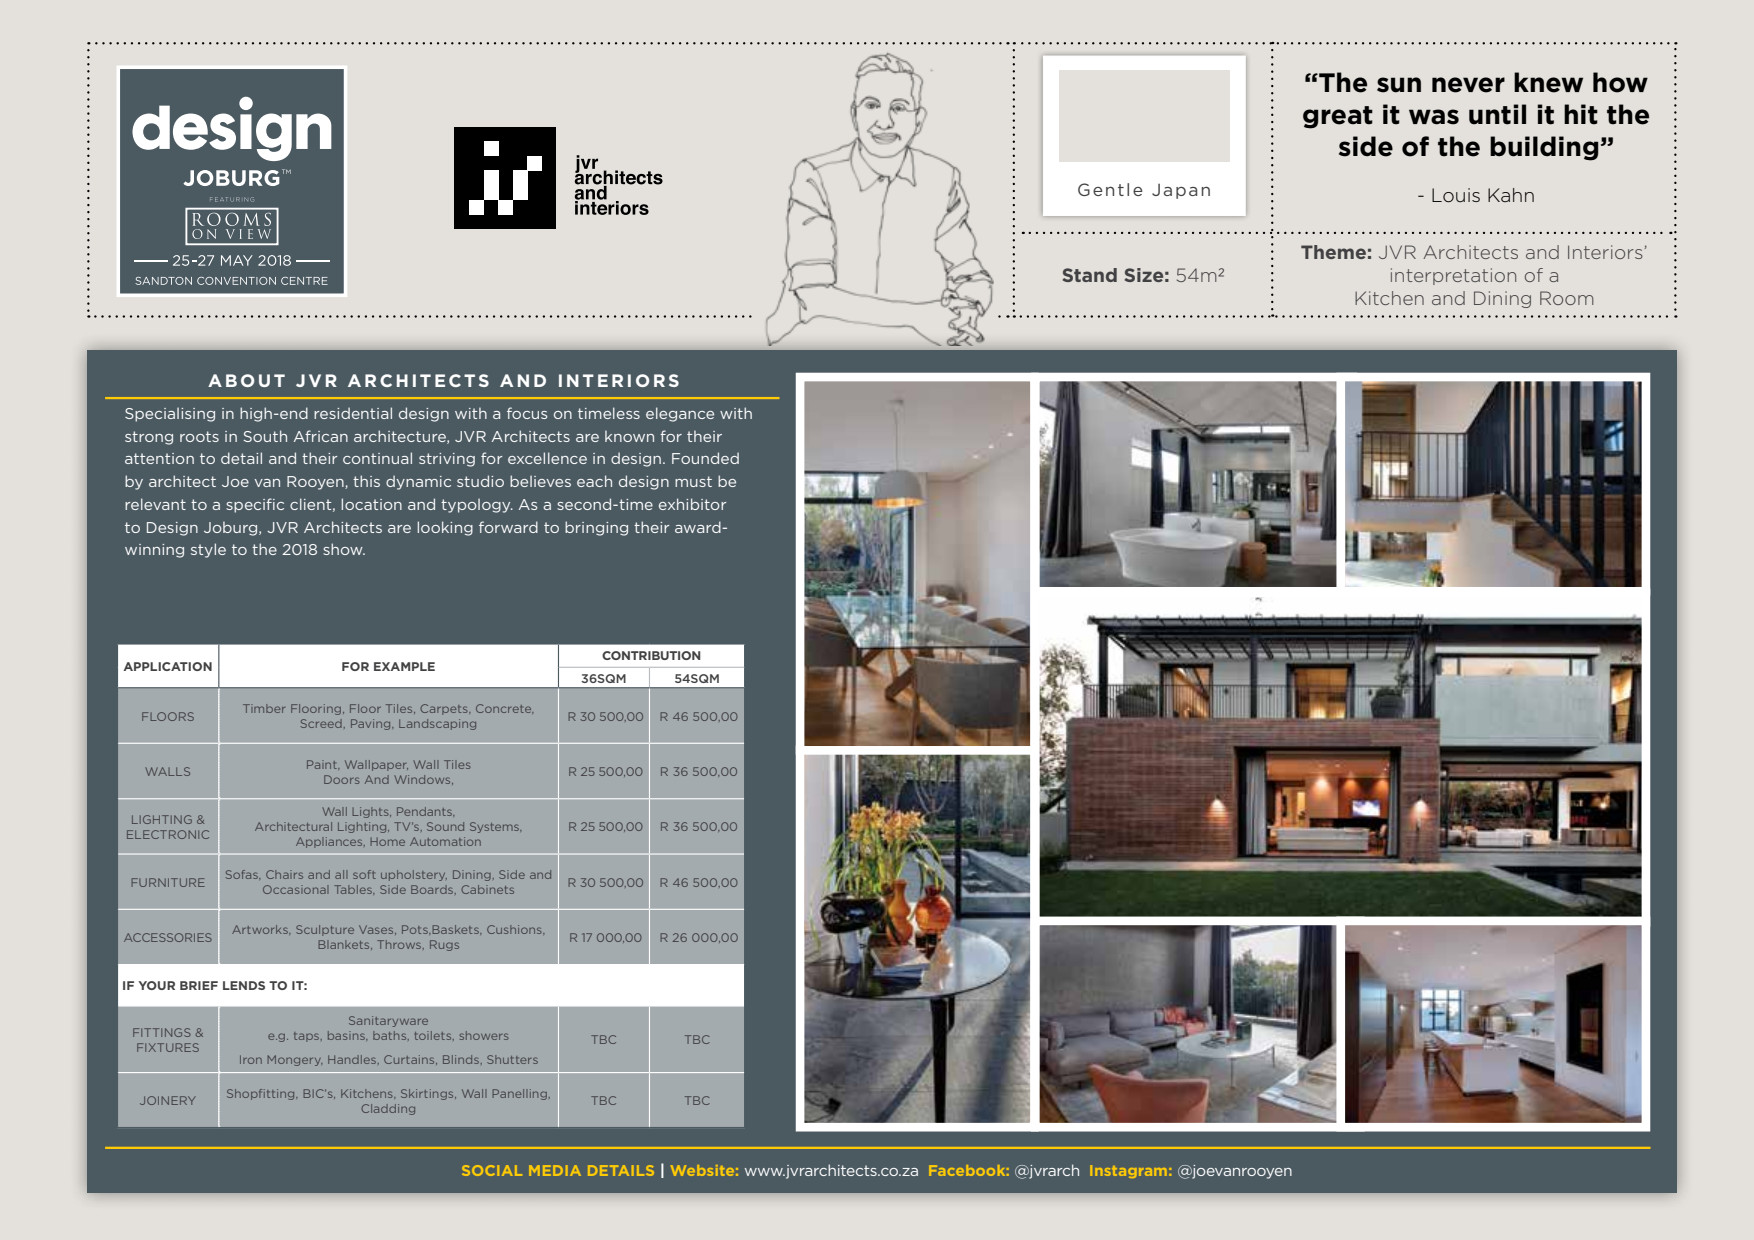 JVR Architects and Interiors